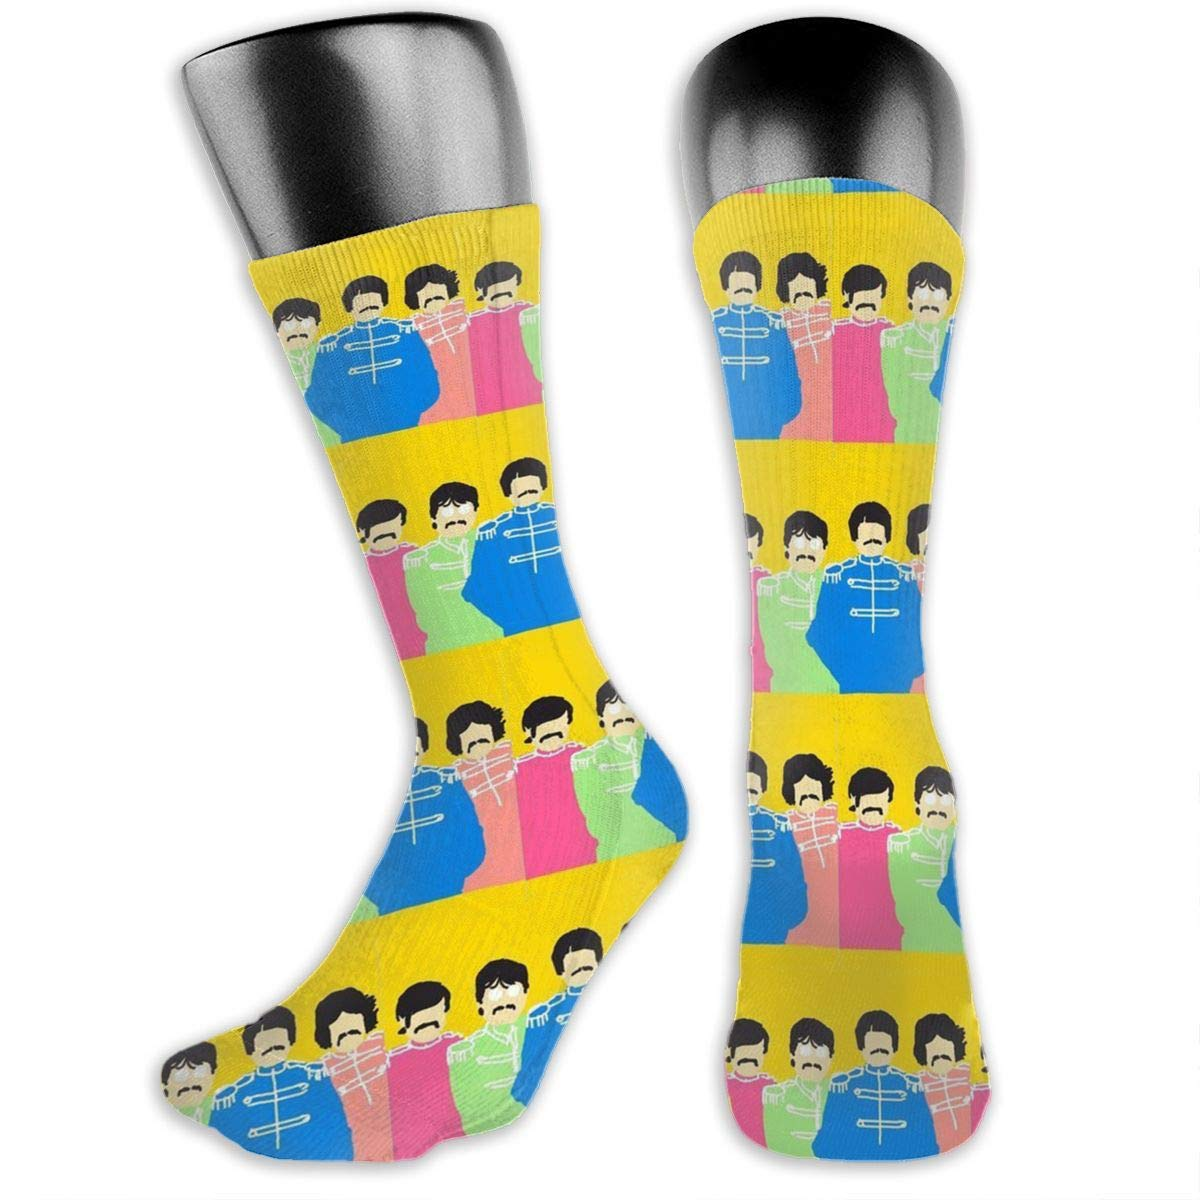 Sgt Peppers Casual Socks Athletic Crew Socks For Female And Male Sports Travel Party Flat Length 15.7 Inch.